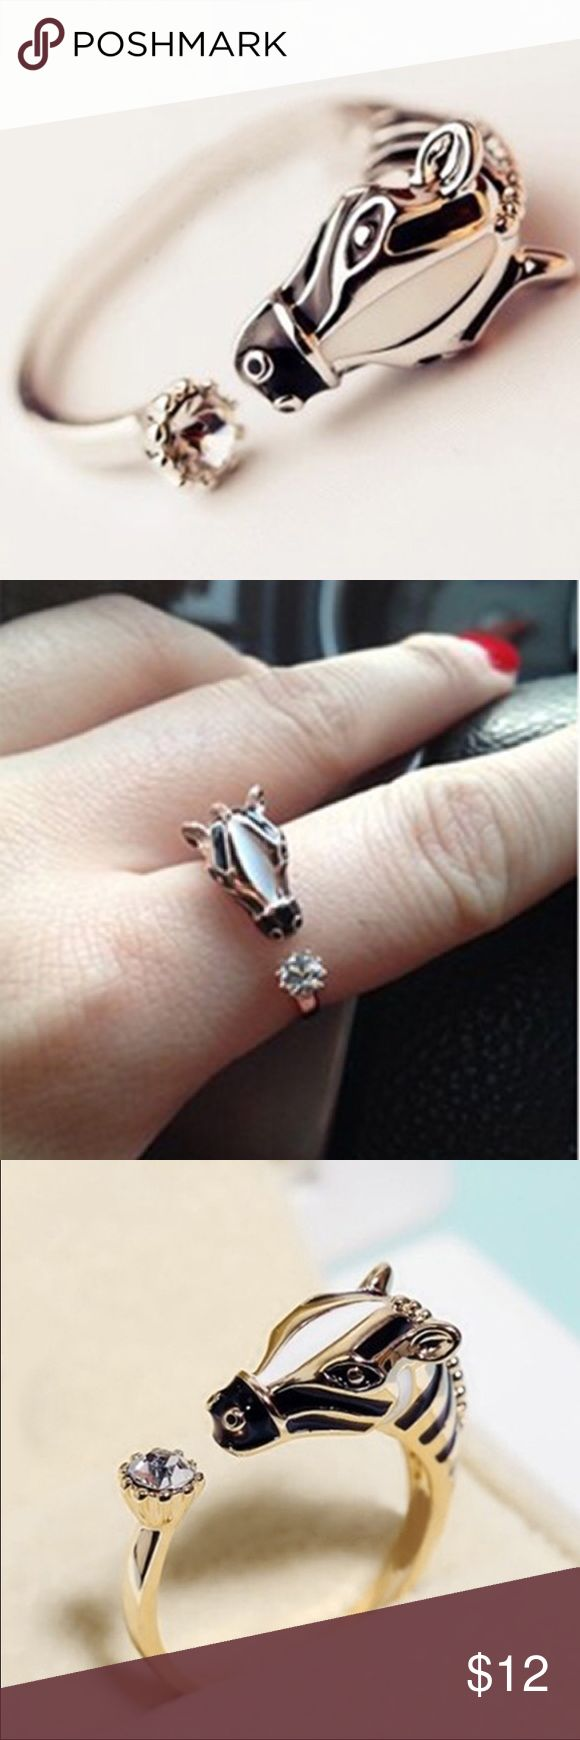 Silver plated open horse ring NWT boutique brand Jewelry Rings